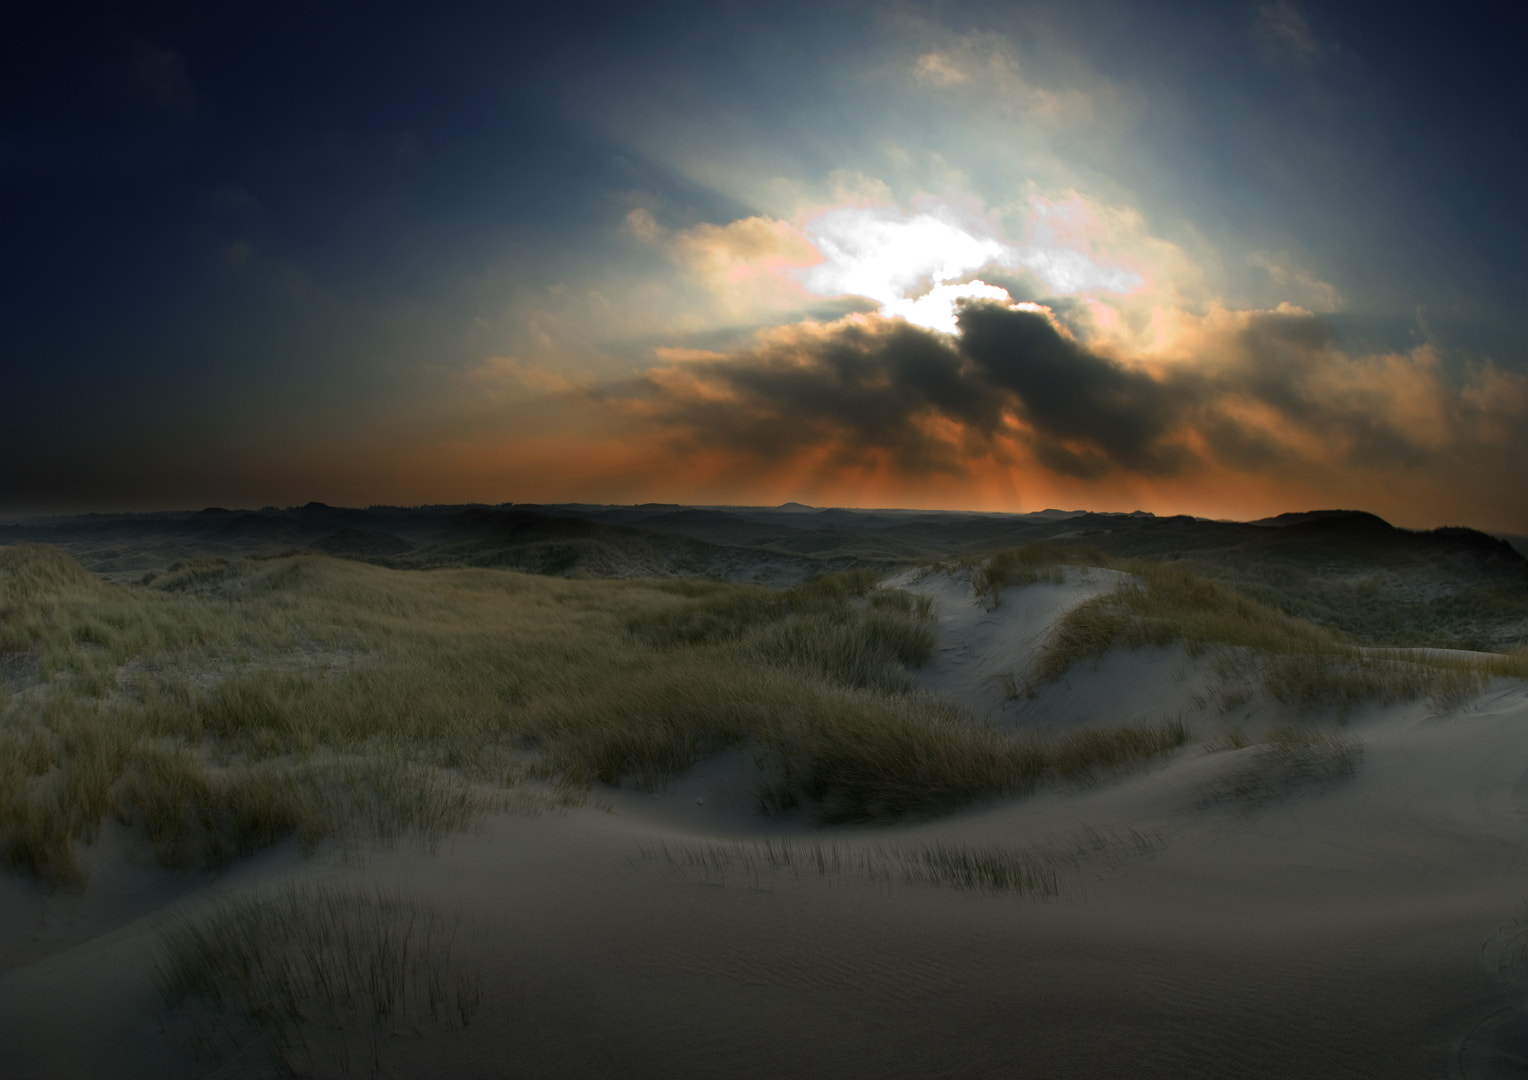 Photograph Sunrise at The Danish West Coast by Søren Udby on 500px